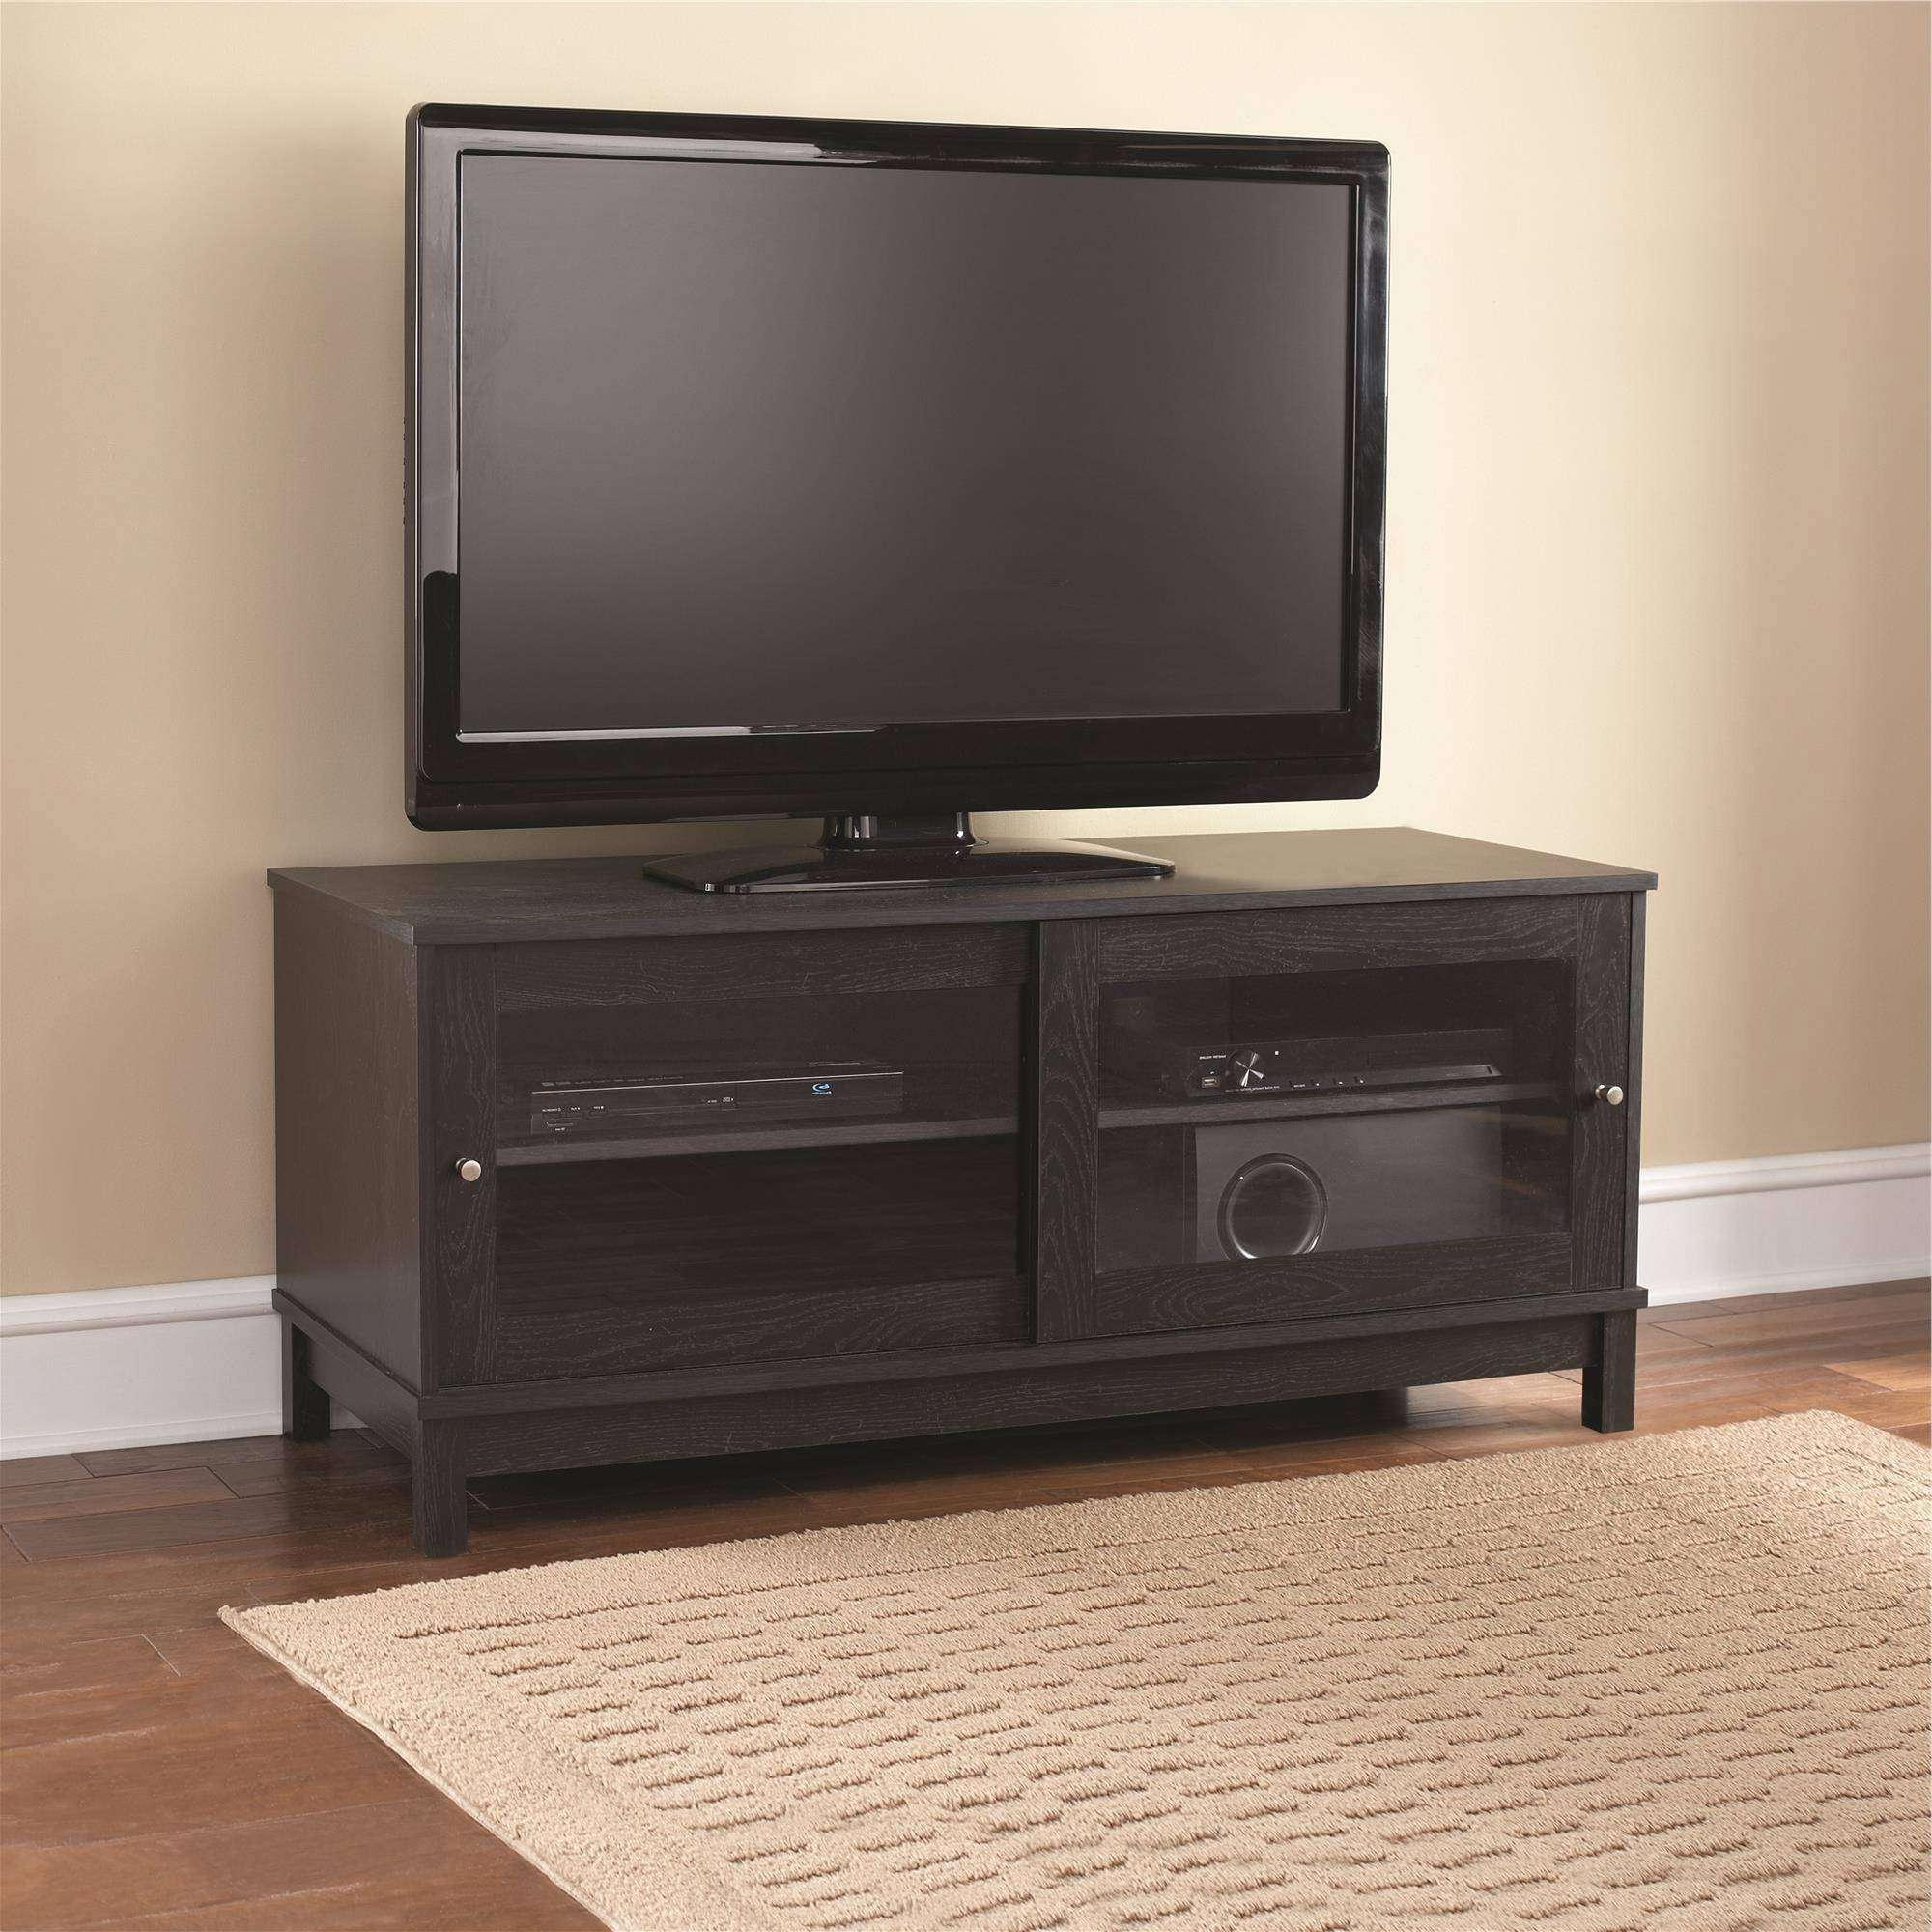 Tv : Beautiful Light Oak Tv Stands Flat Screen Mainstays Tv Stand With Regard To Light Oak Tv Stands Flat Screen (View 13 of 15)